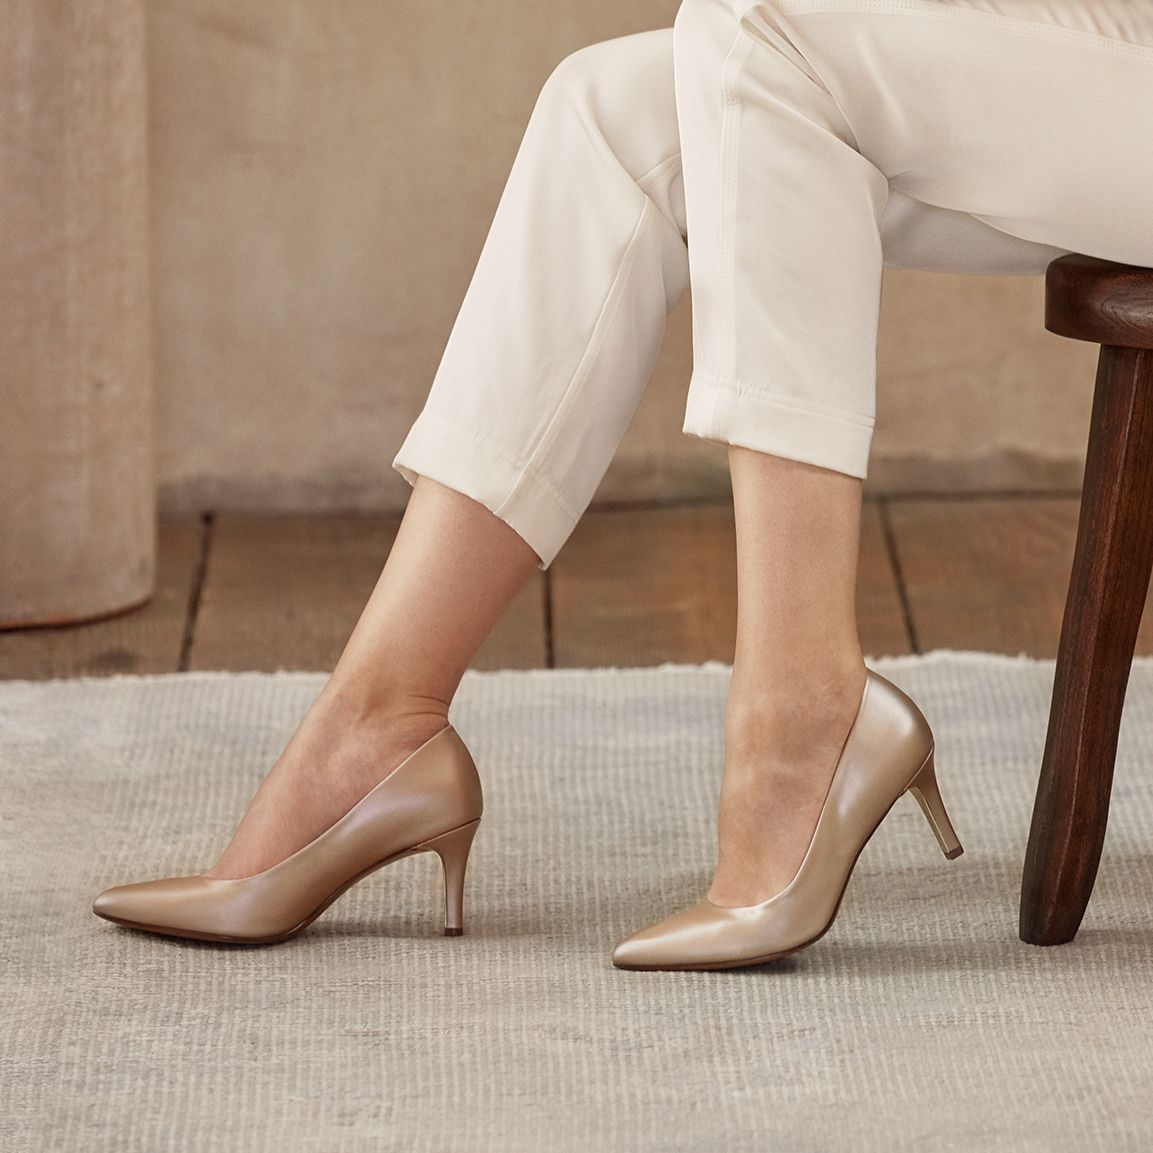 c388245b58aa Put your best foot forward this Spring in our everyday-versatile ...